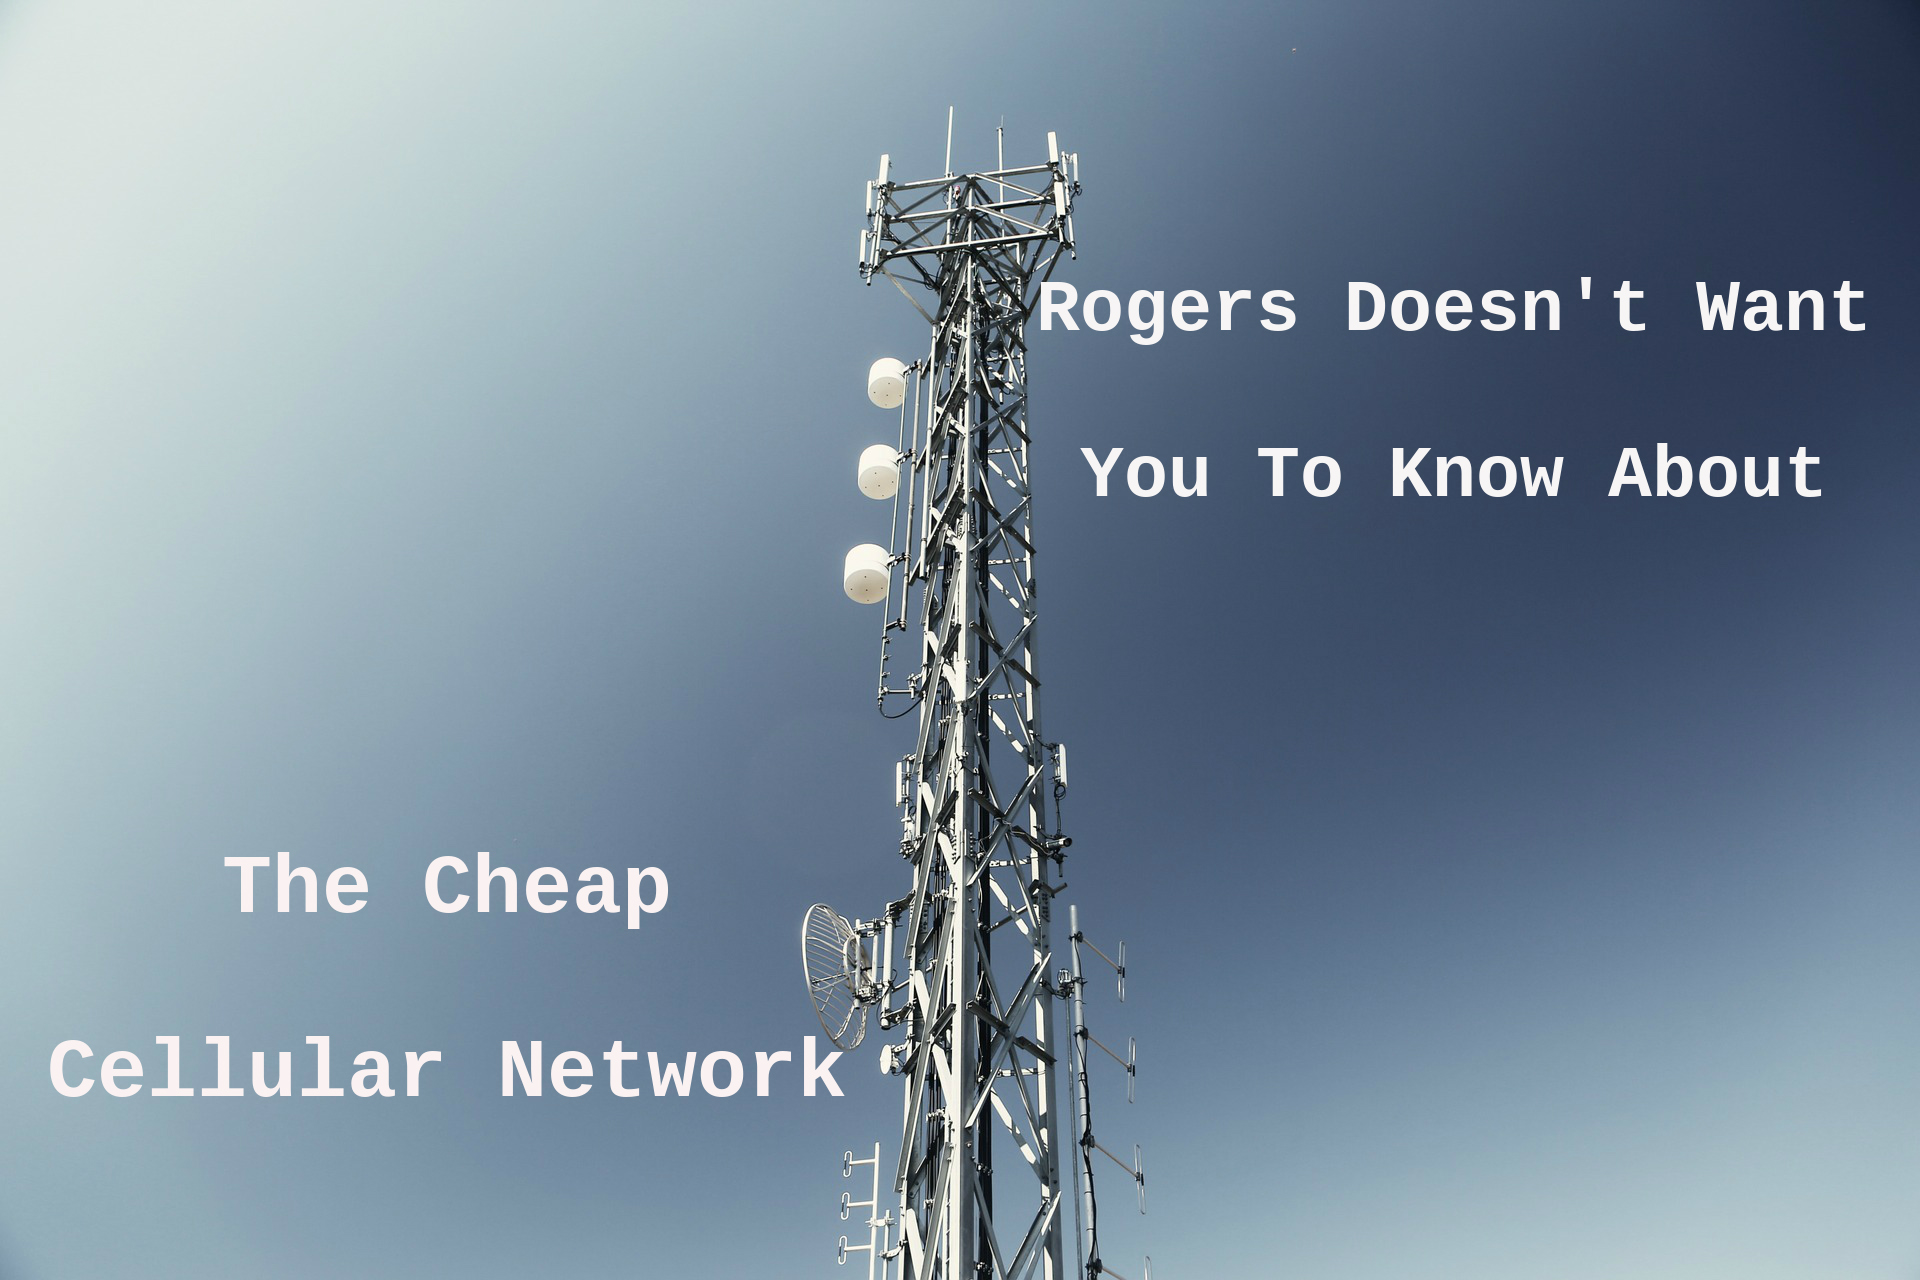 rogers network